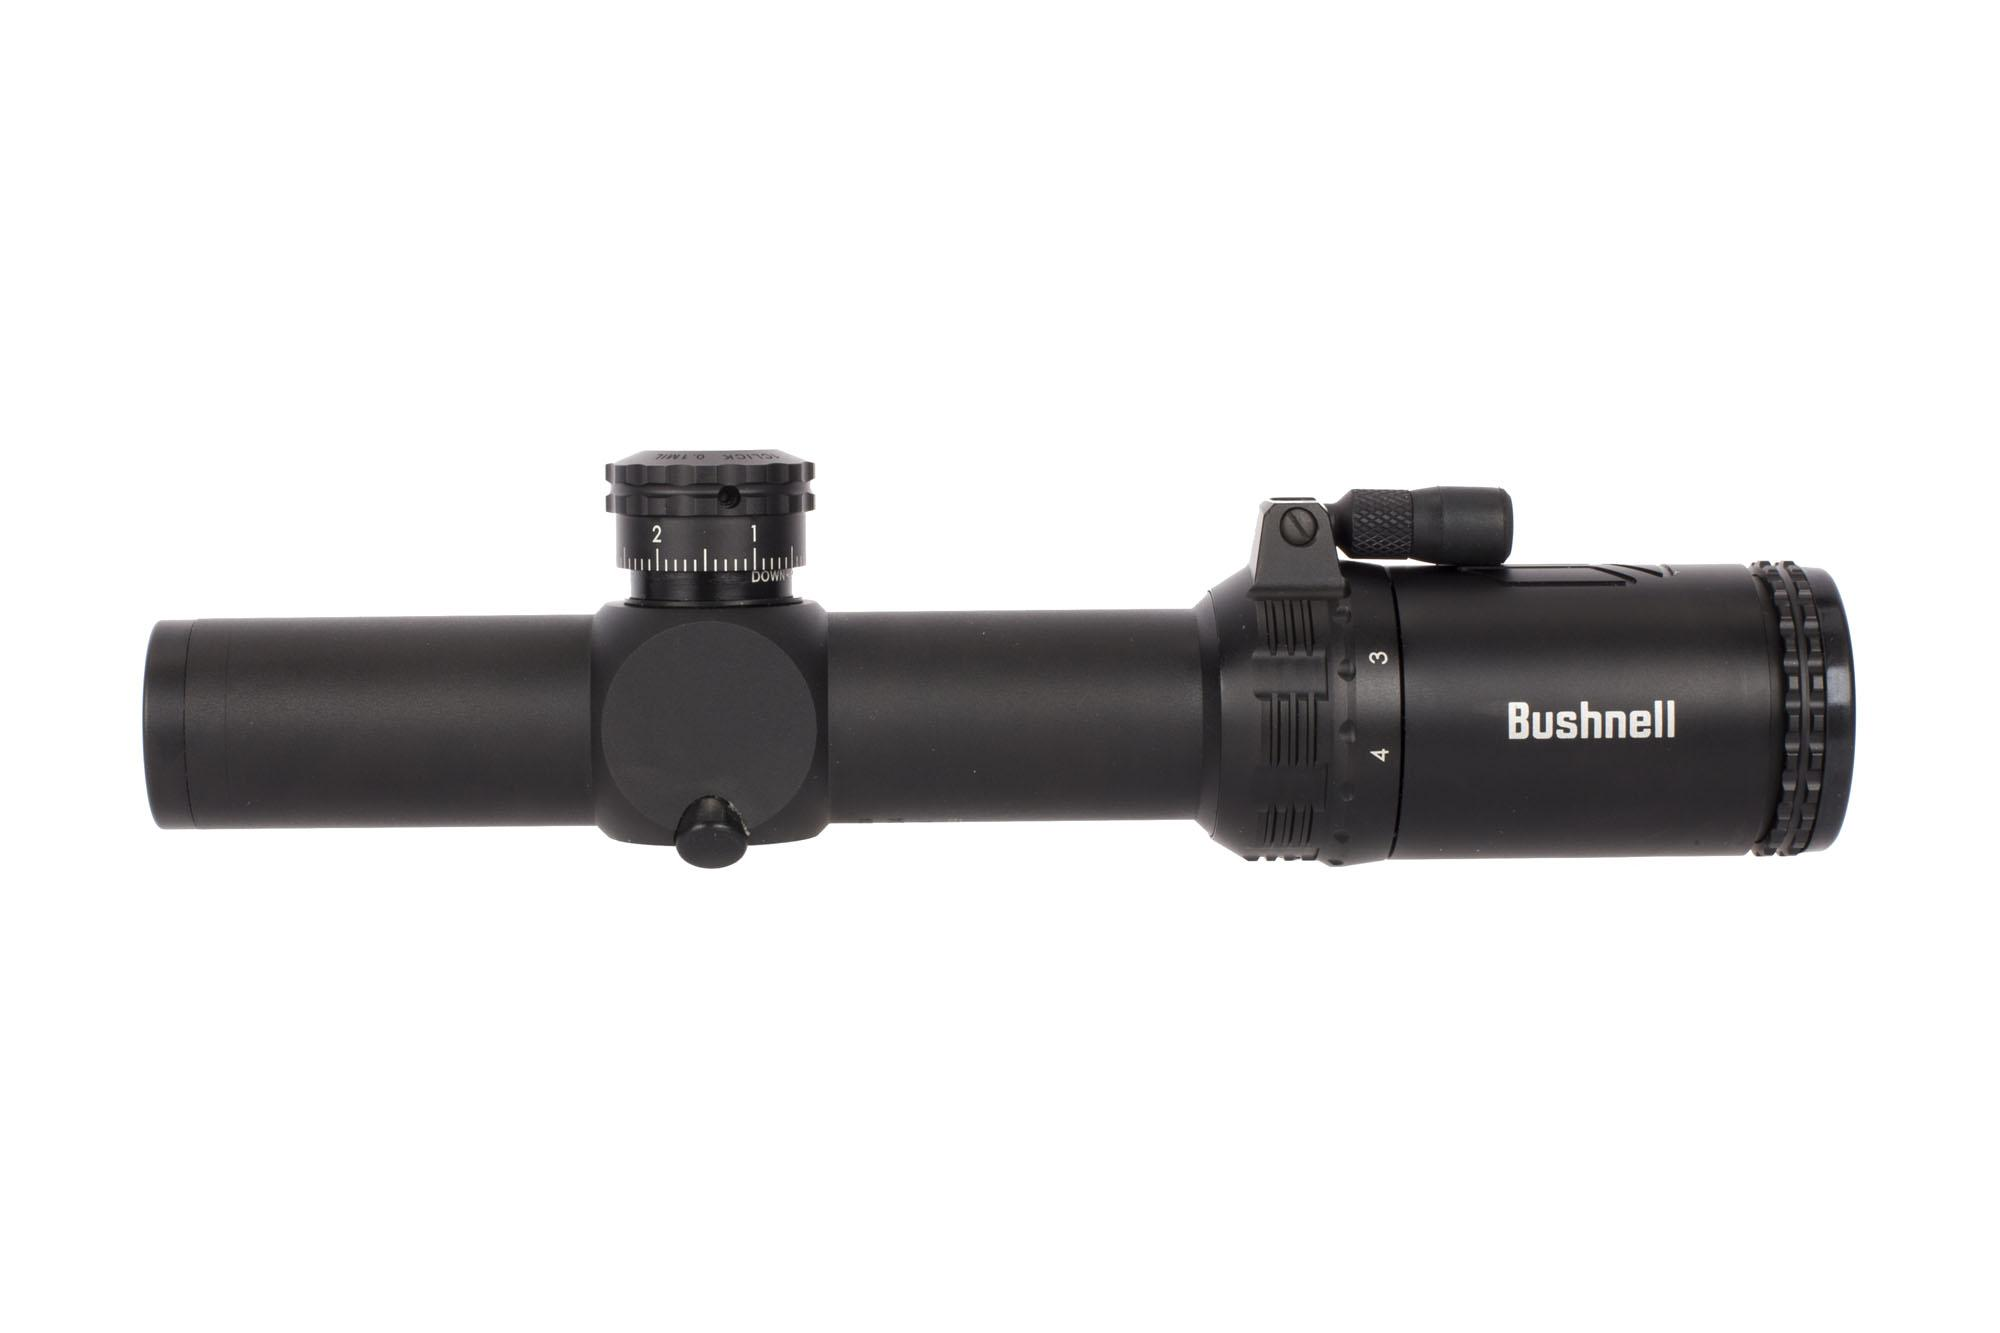 Bushnell AR Optics 1-4x24mm Rifle Scope - Drop Zone 223 Reticle